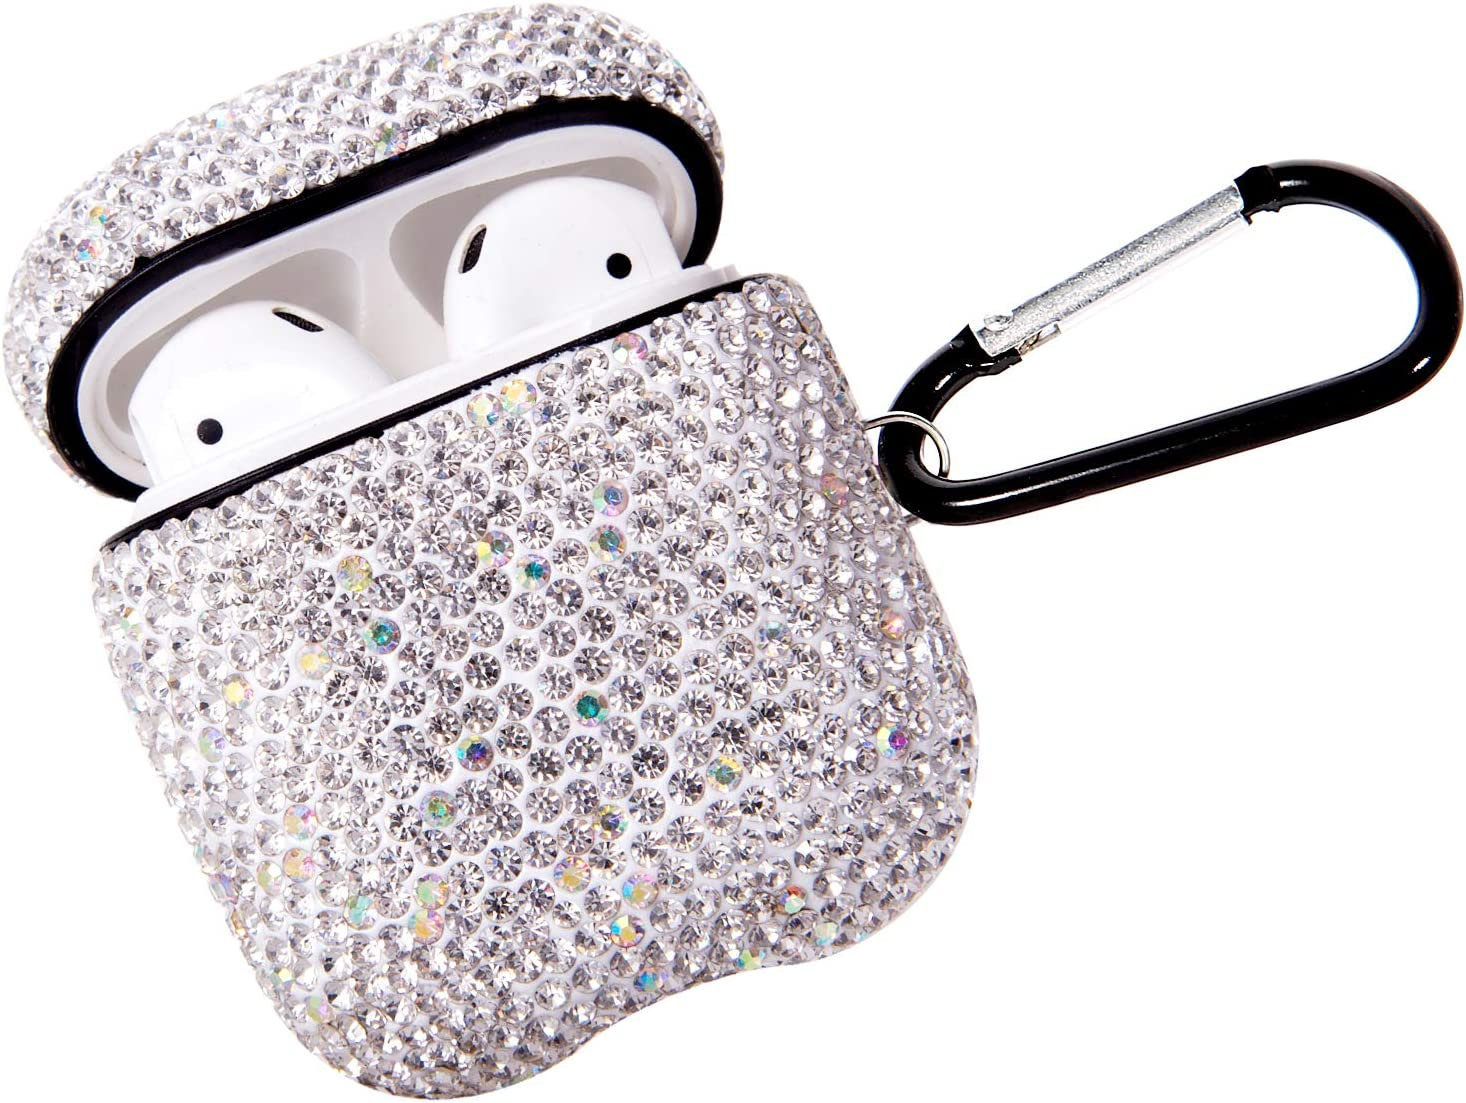 2020 Sparkly Diamond AirPods Case with Keychain, Shockproof Protective Premium Bling Rhinestone Cover Skin for AirPods Charging Case 2 & 1 (White+AB C5)